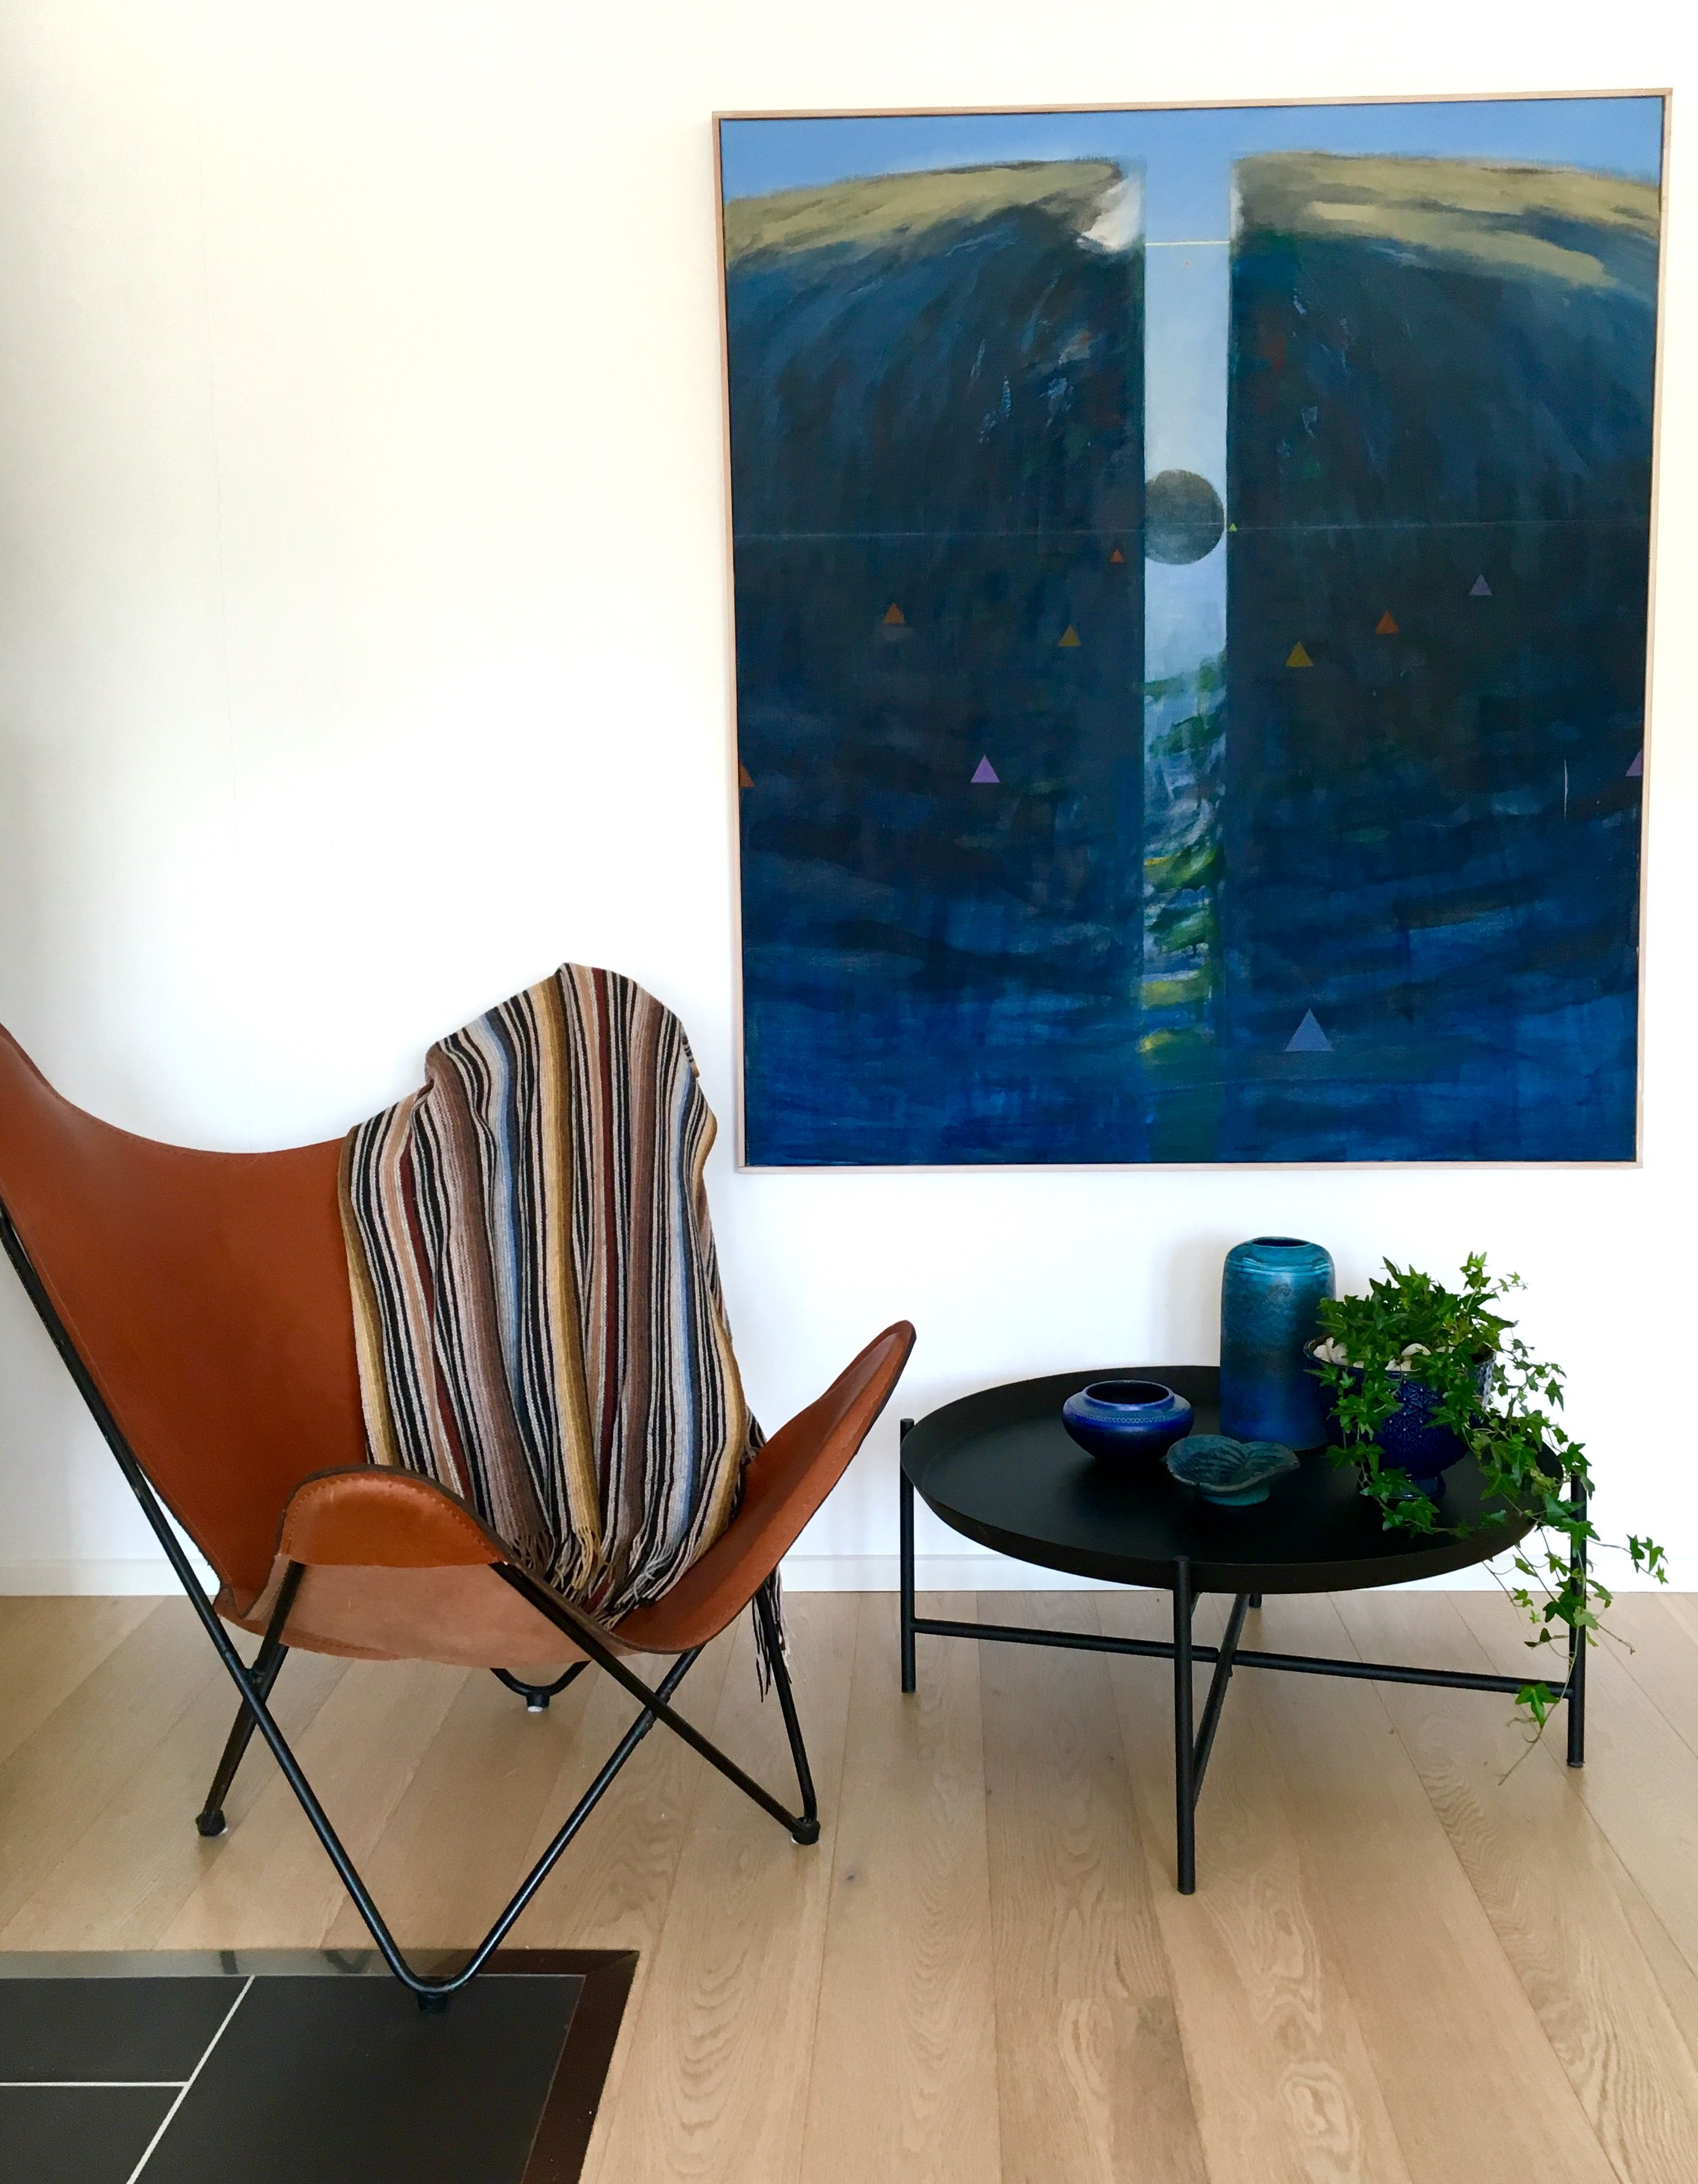 Butterfly Chair Ikea Covers Aliexpress Svartan Coffe Table And Painting By Kg Bratt